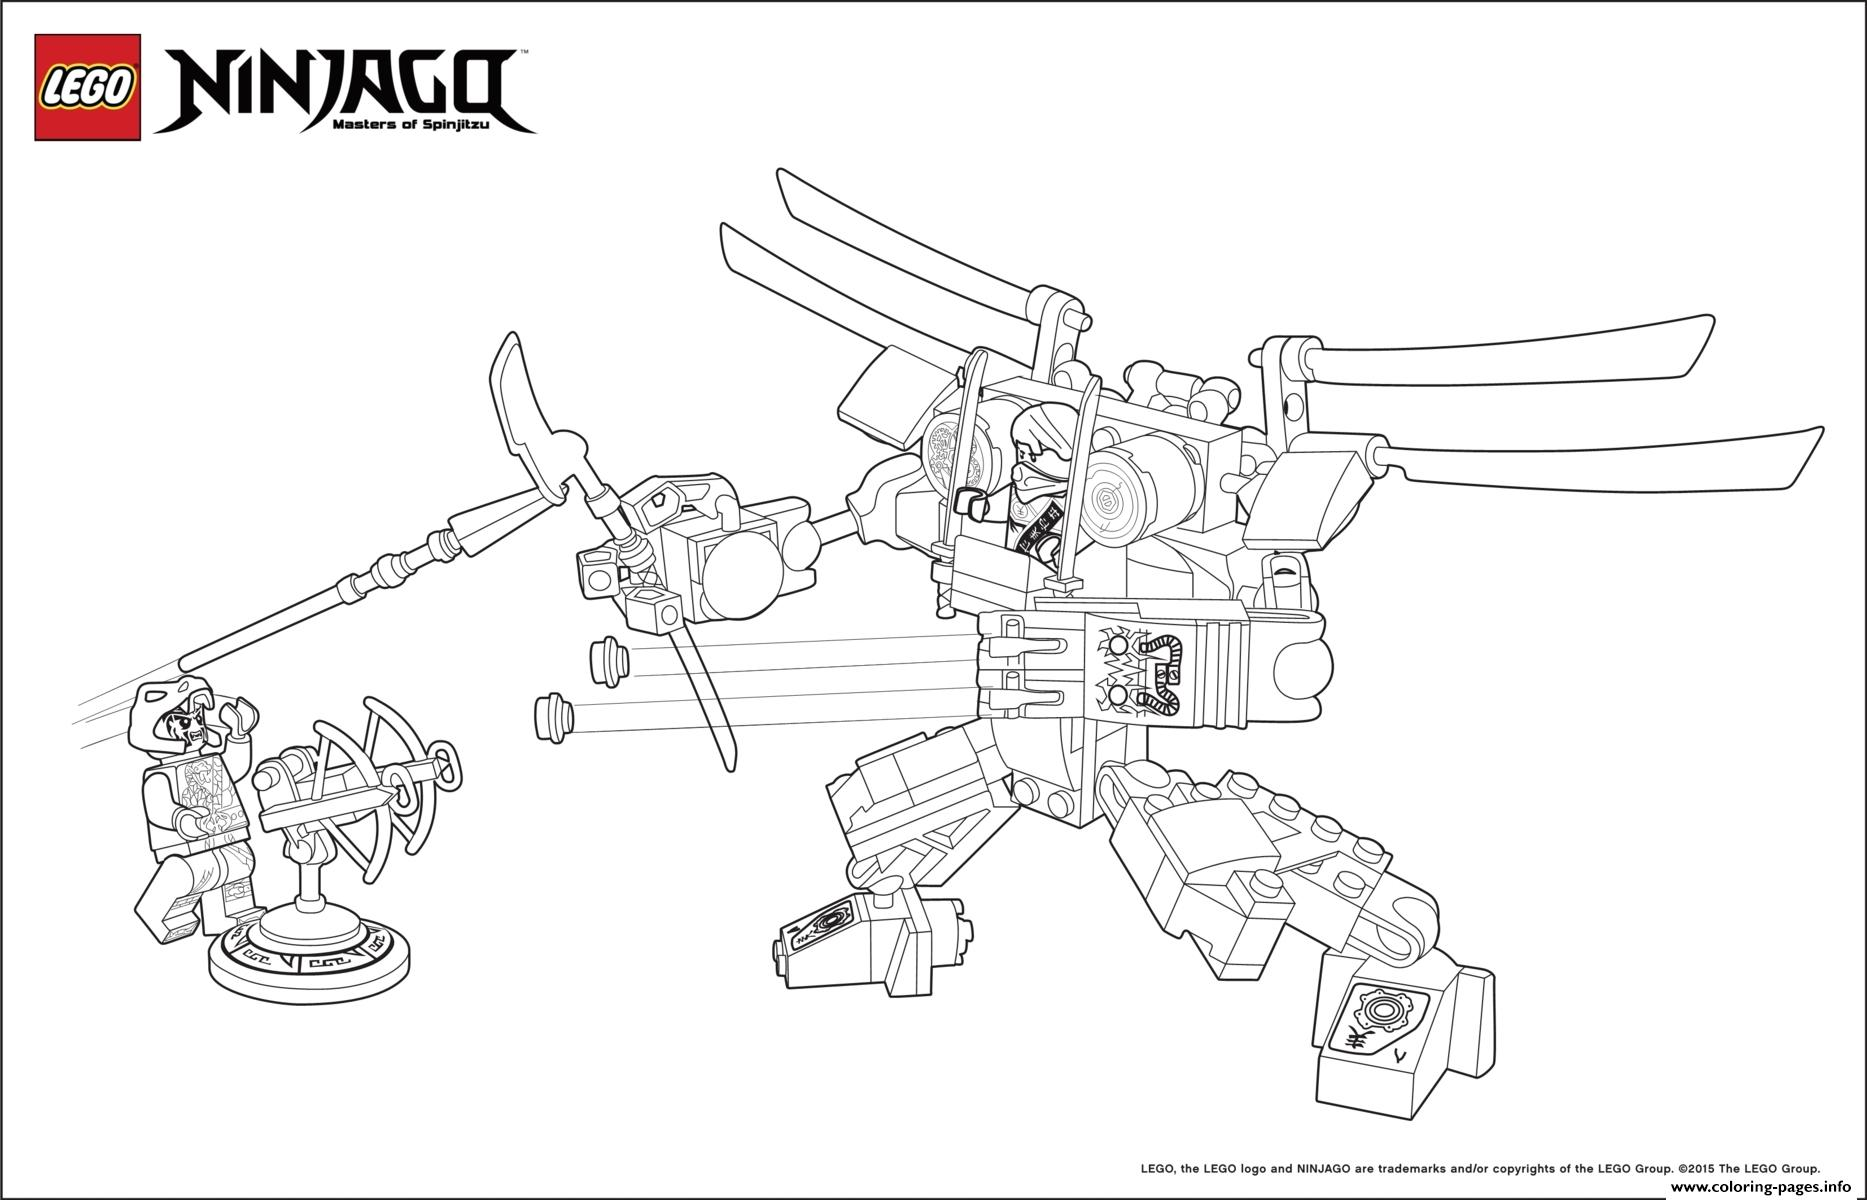 ninjago monster vs dogshank coloring pages printable